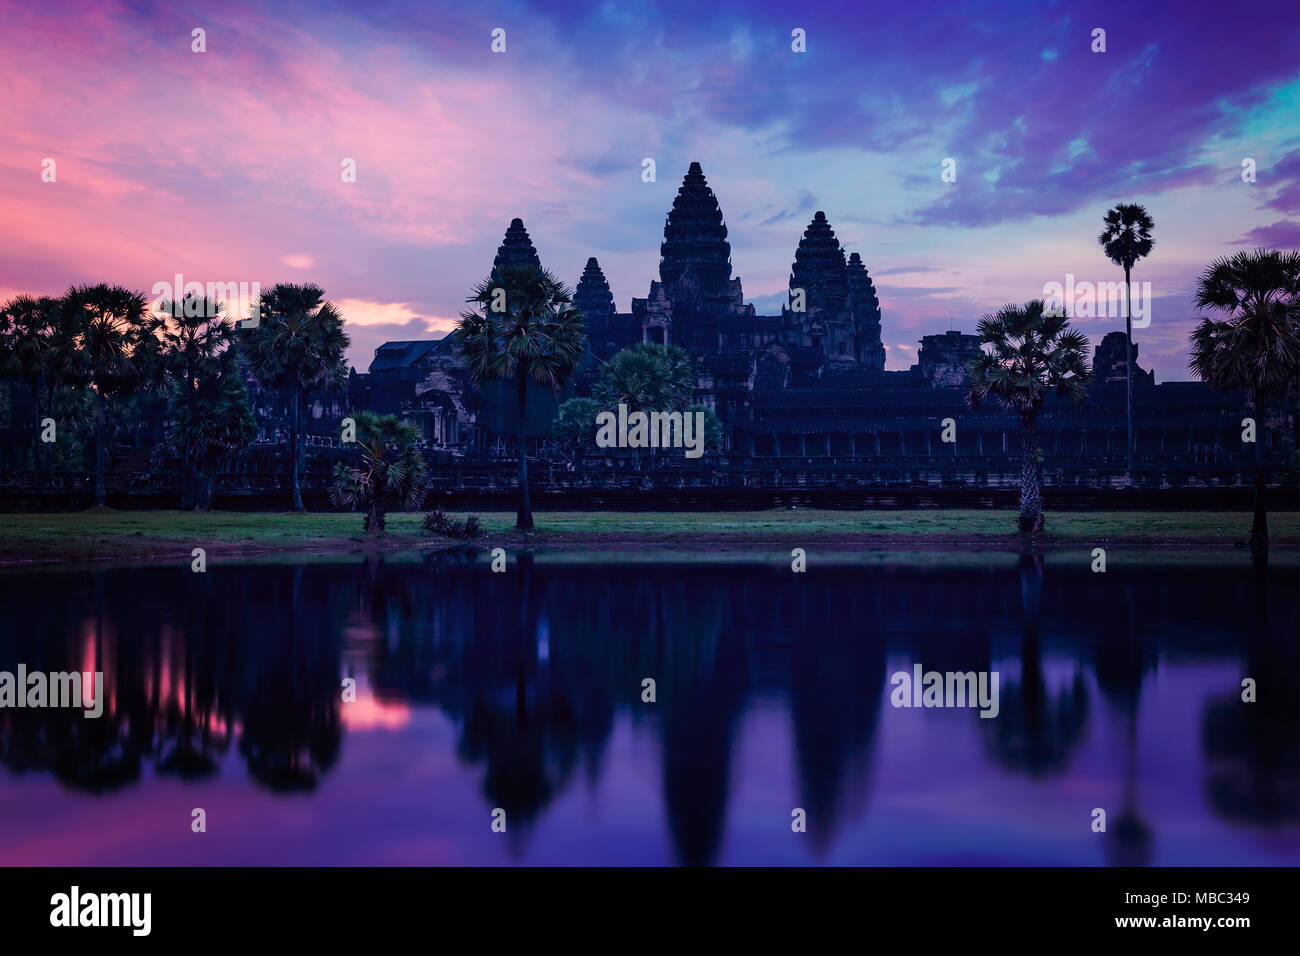 Angkor Wat - famous Cambodian landmark - on sunrise - Stock Image